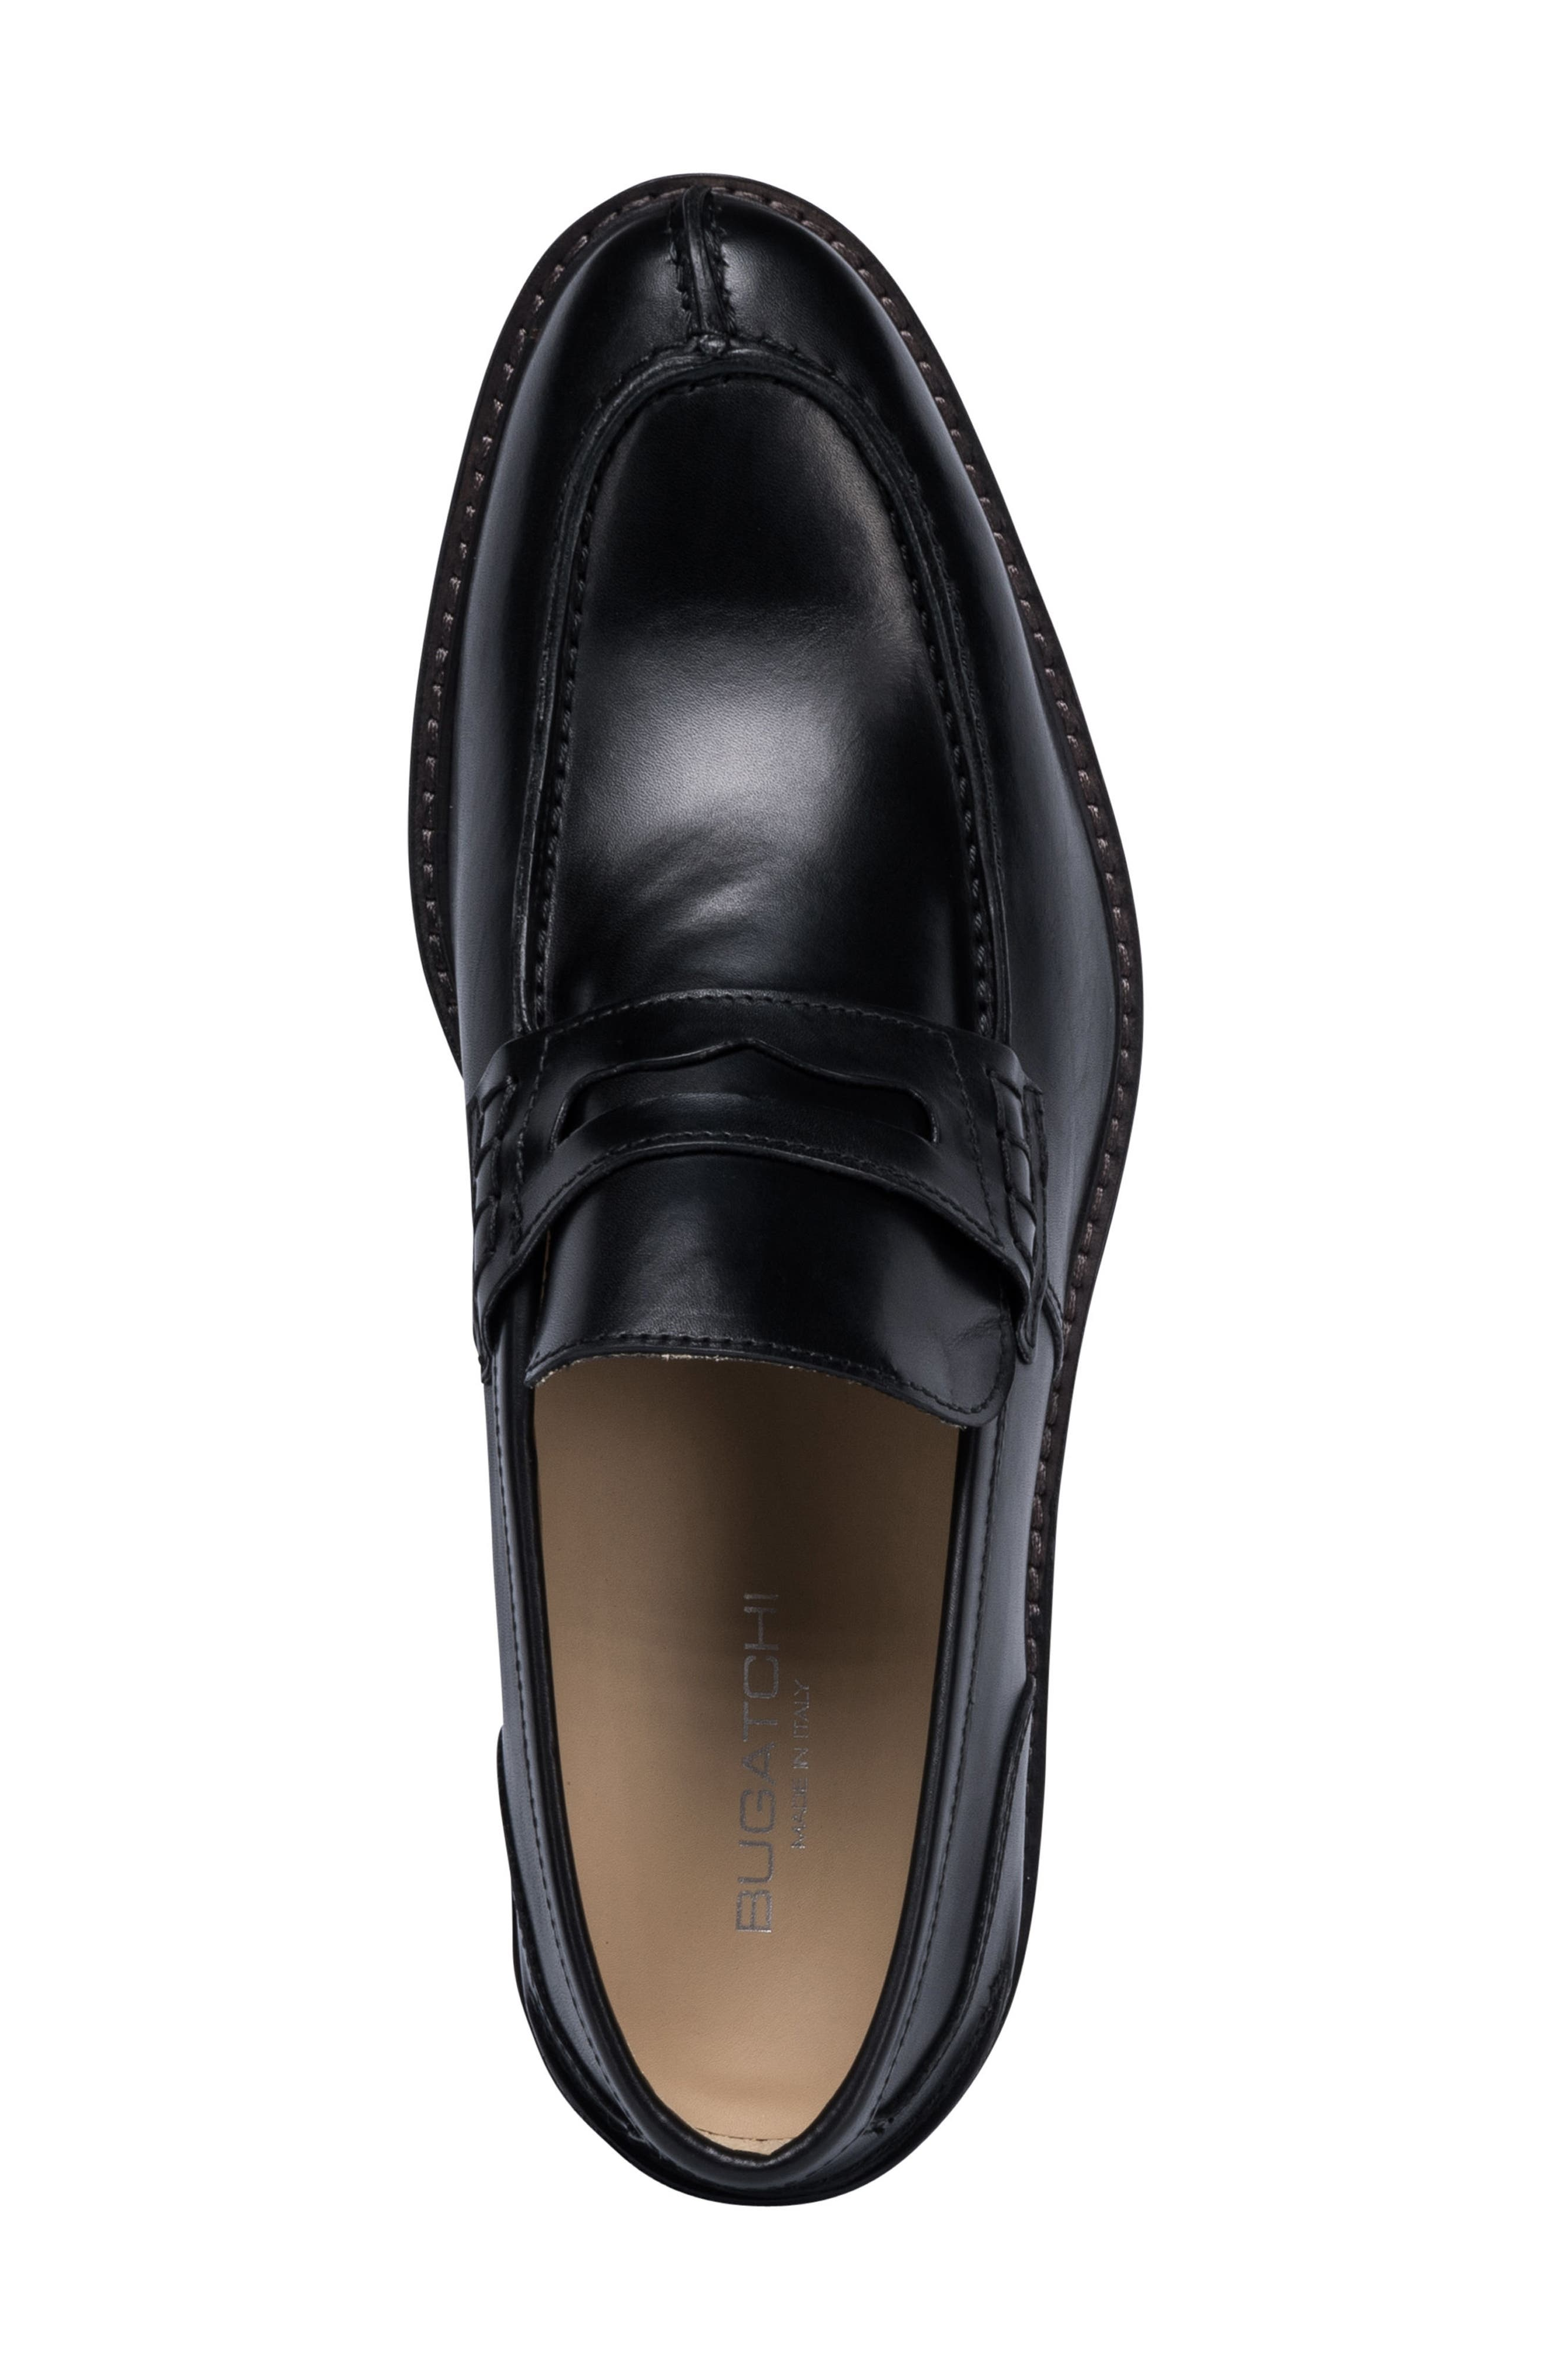 Apron Toe Penny Loafer,                             Alternate thumbnail 5, color,                             Nero Leather